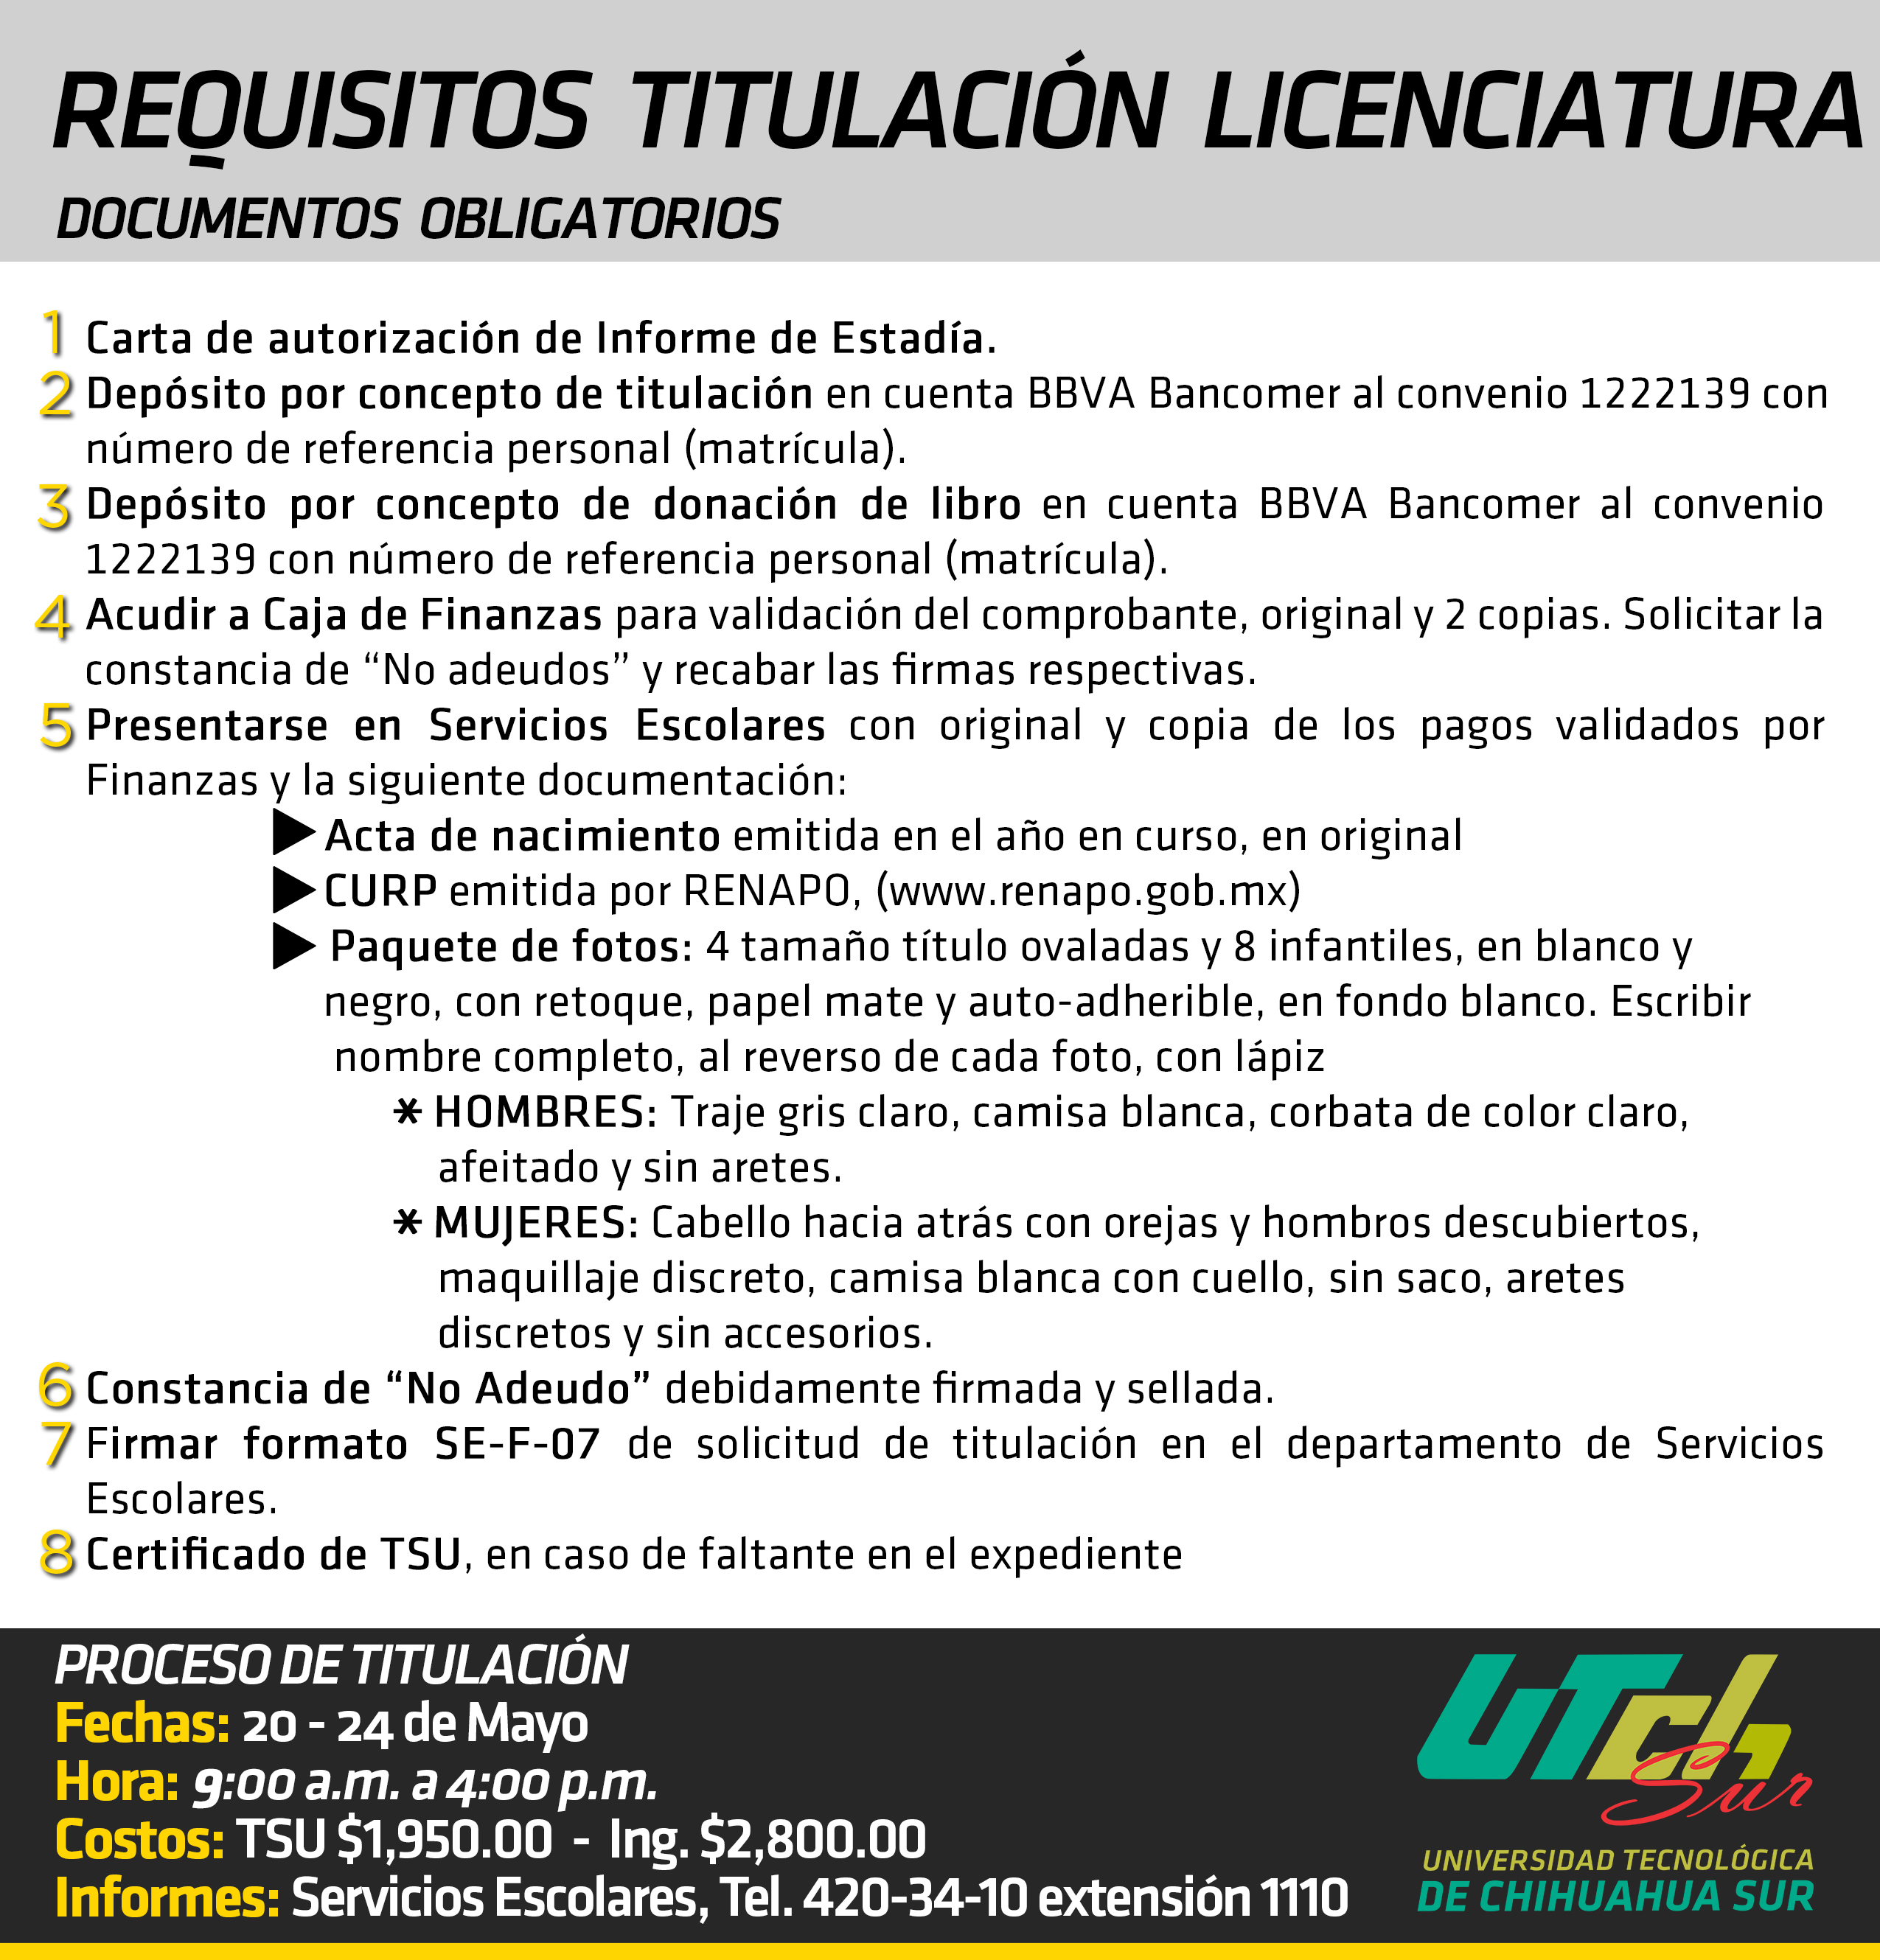 requisito LIc